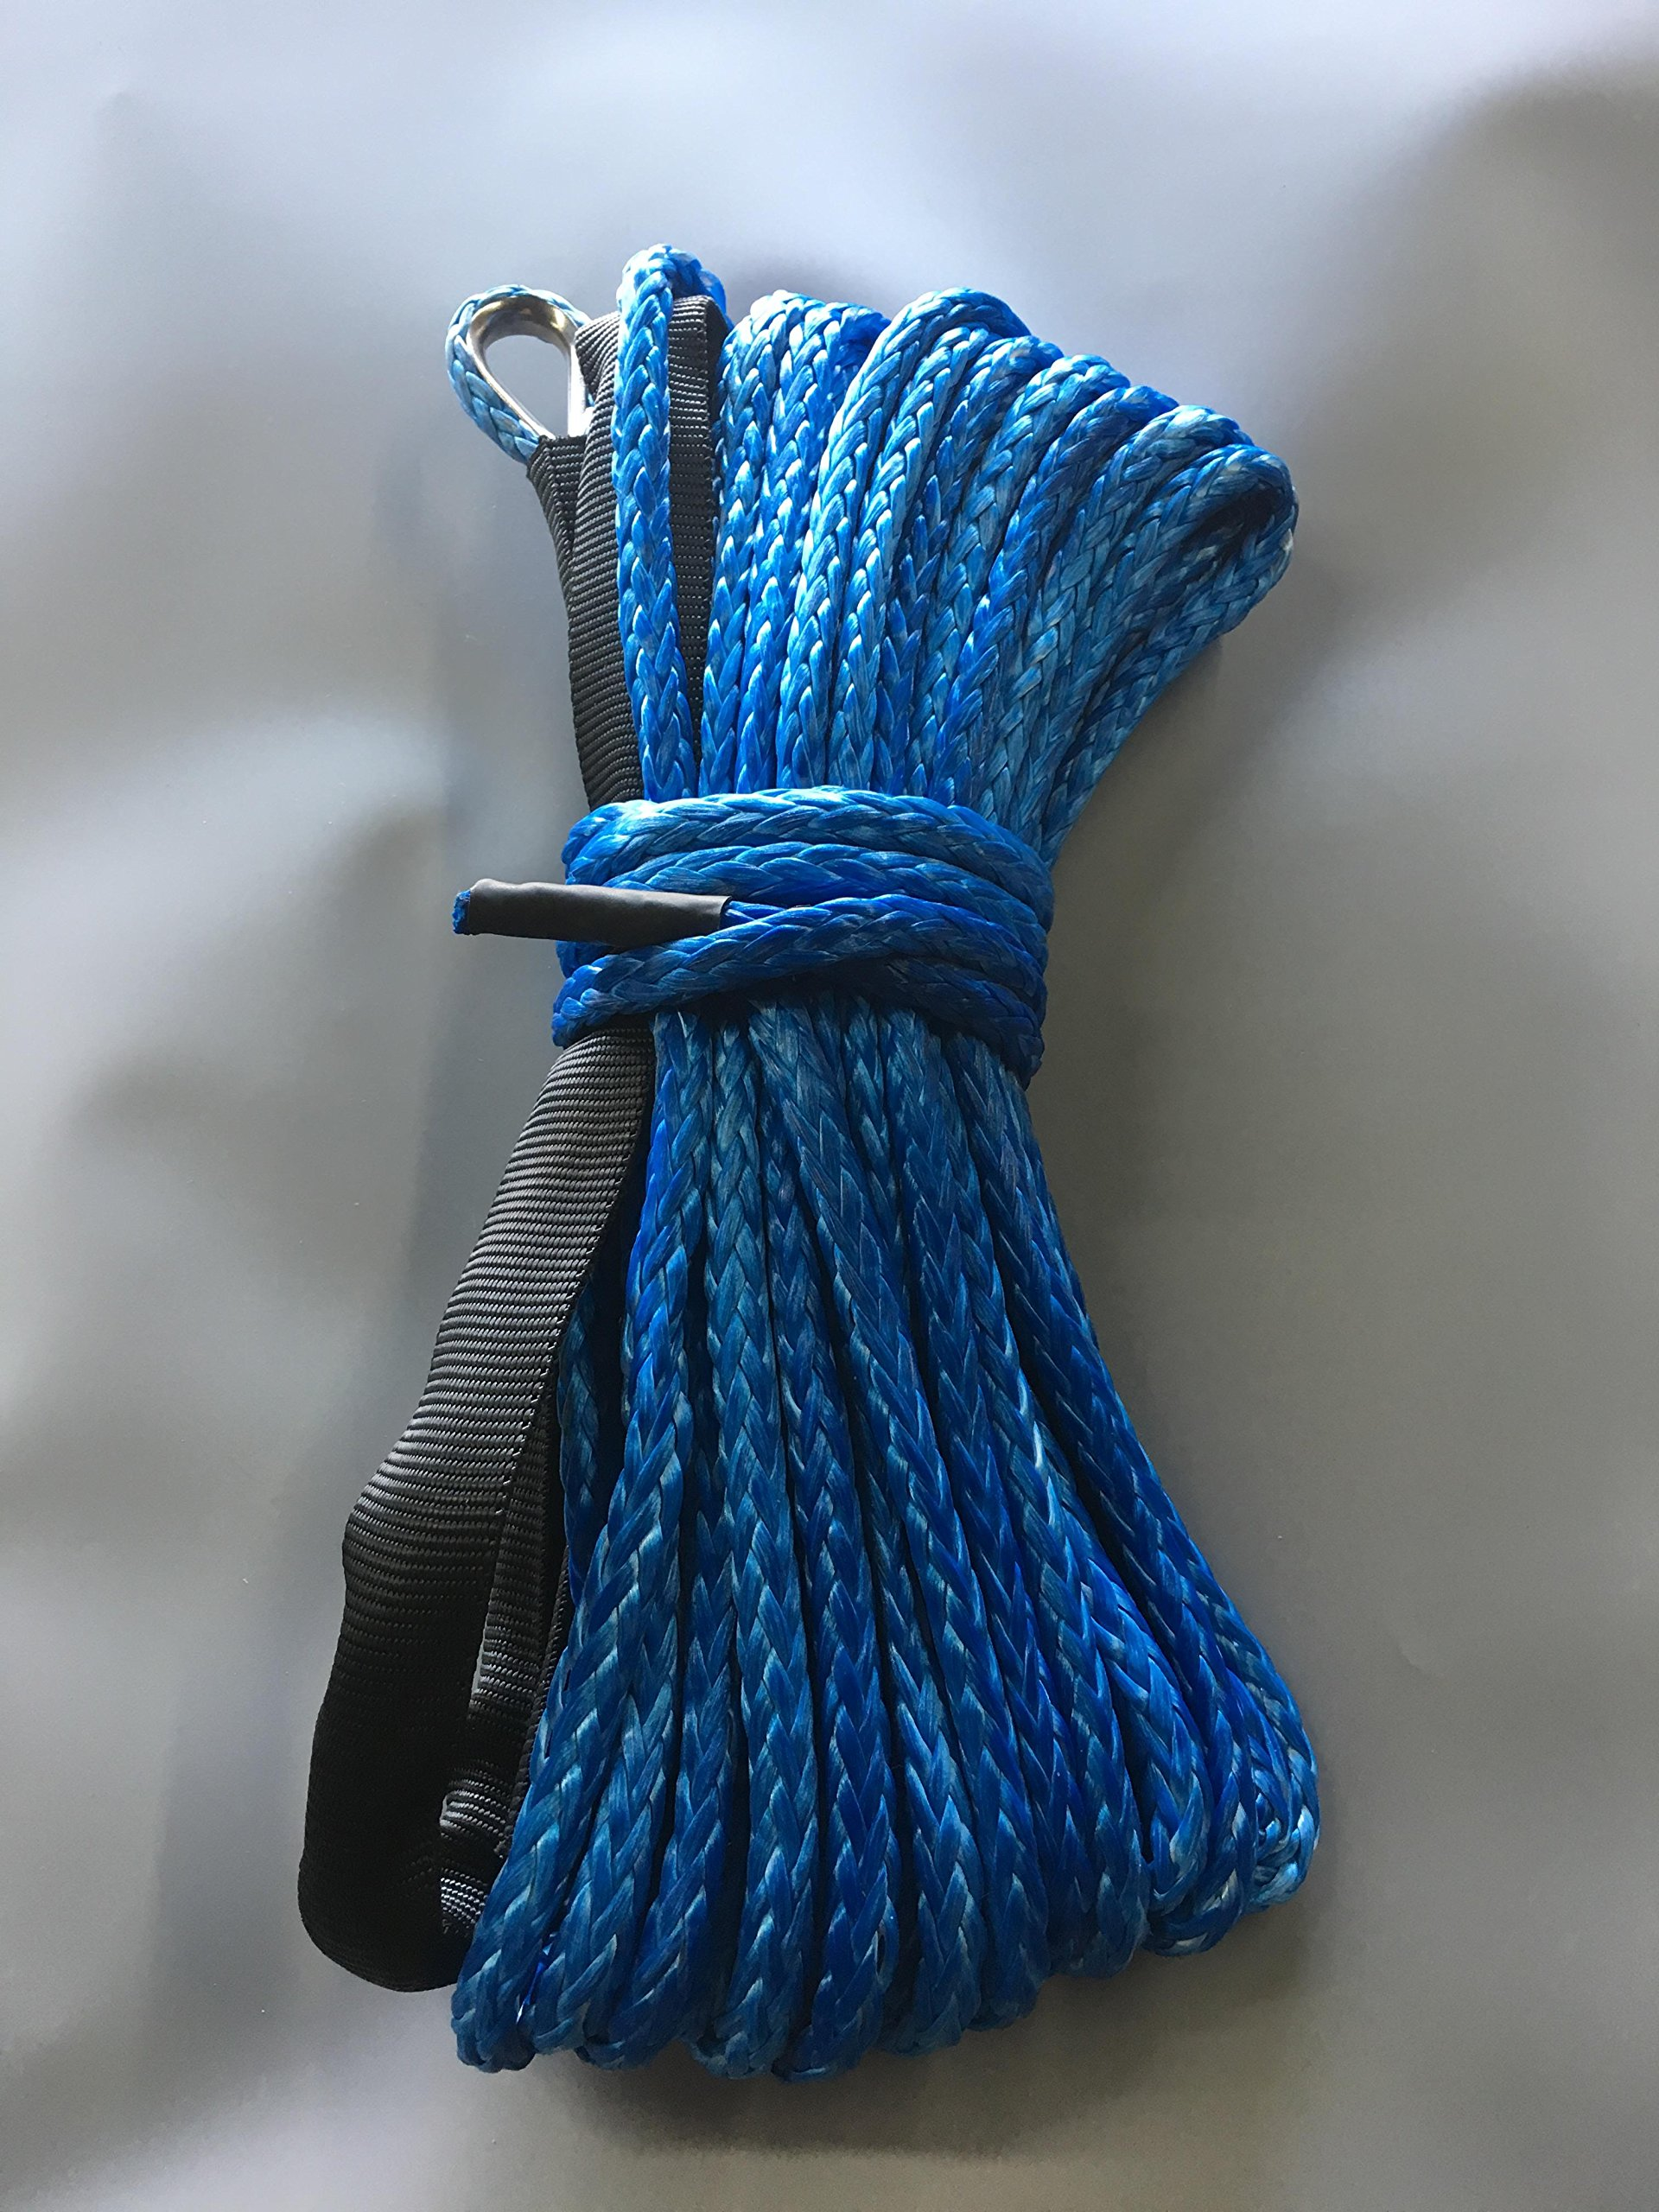 Polaris High lifter 1000 900 Winch Replacement Synthetic Rope (Blue) by Southern Powersports (Image #1)